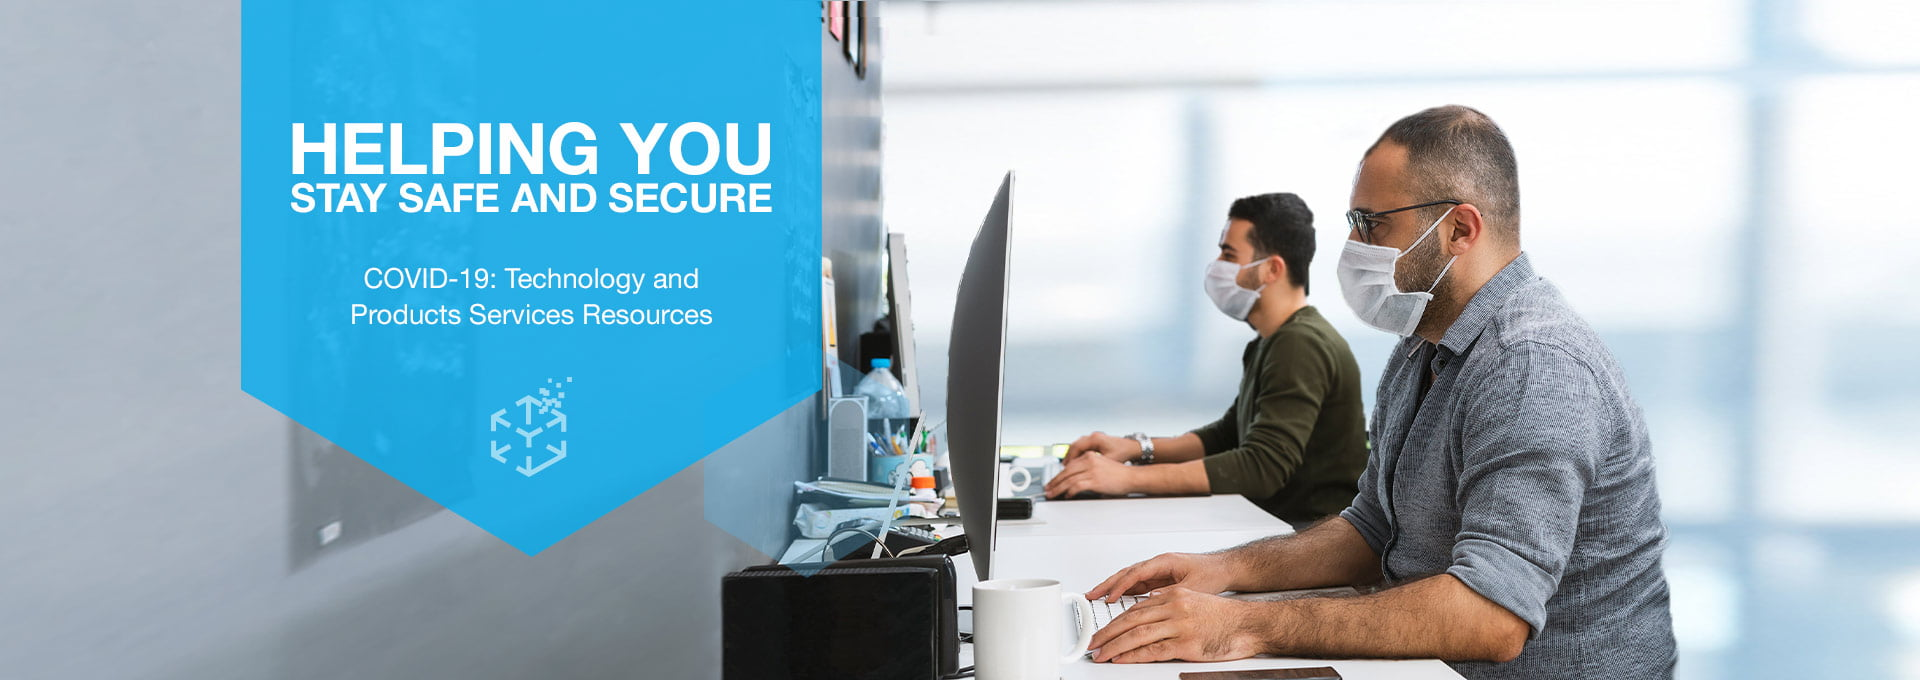 Helping You Stay Safe and Secure